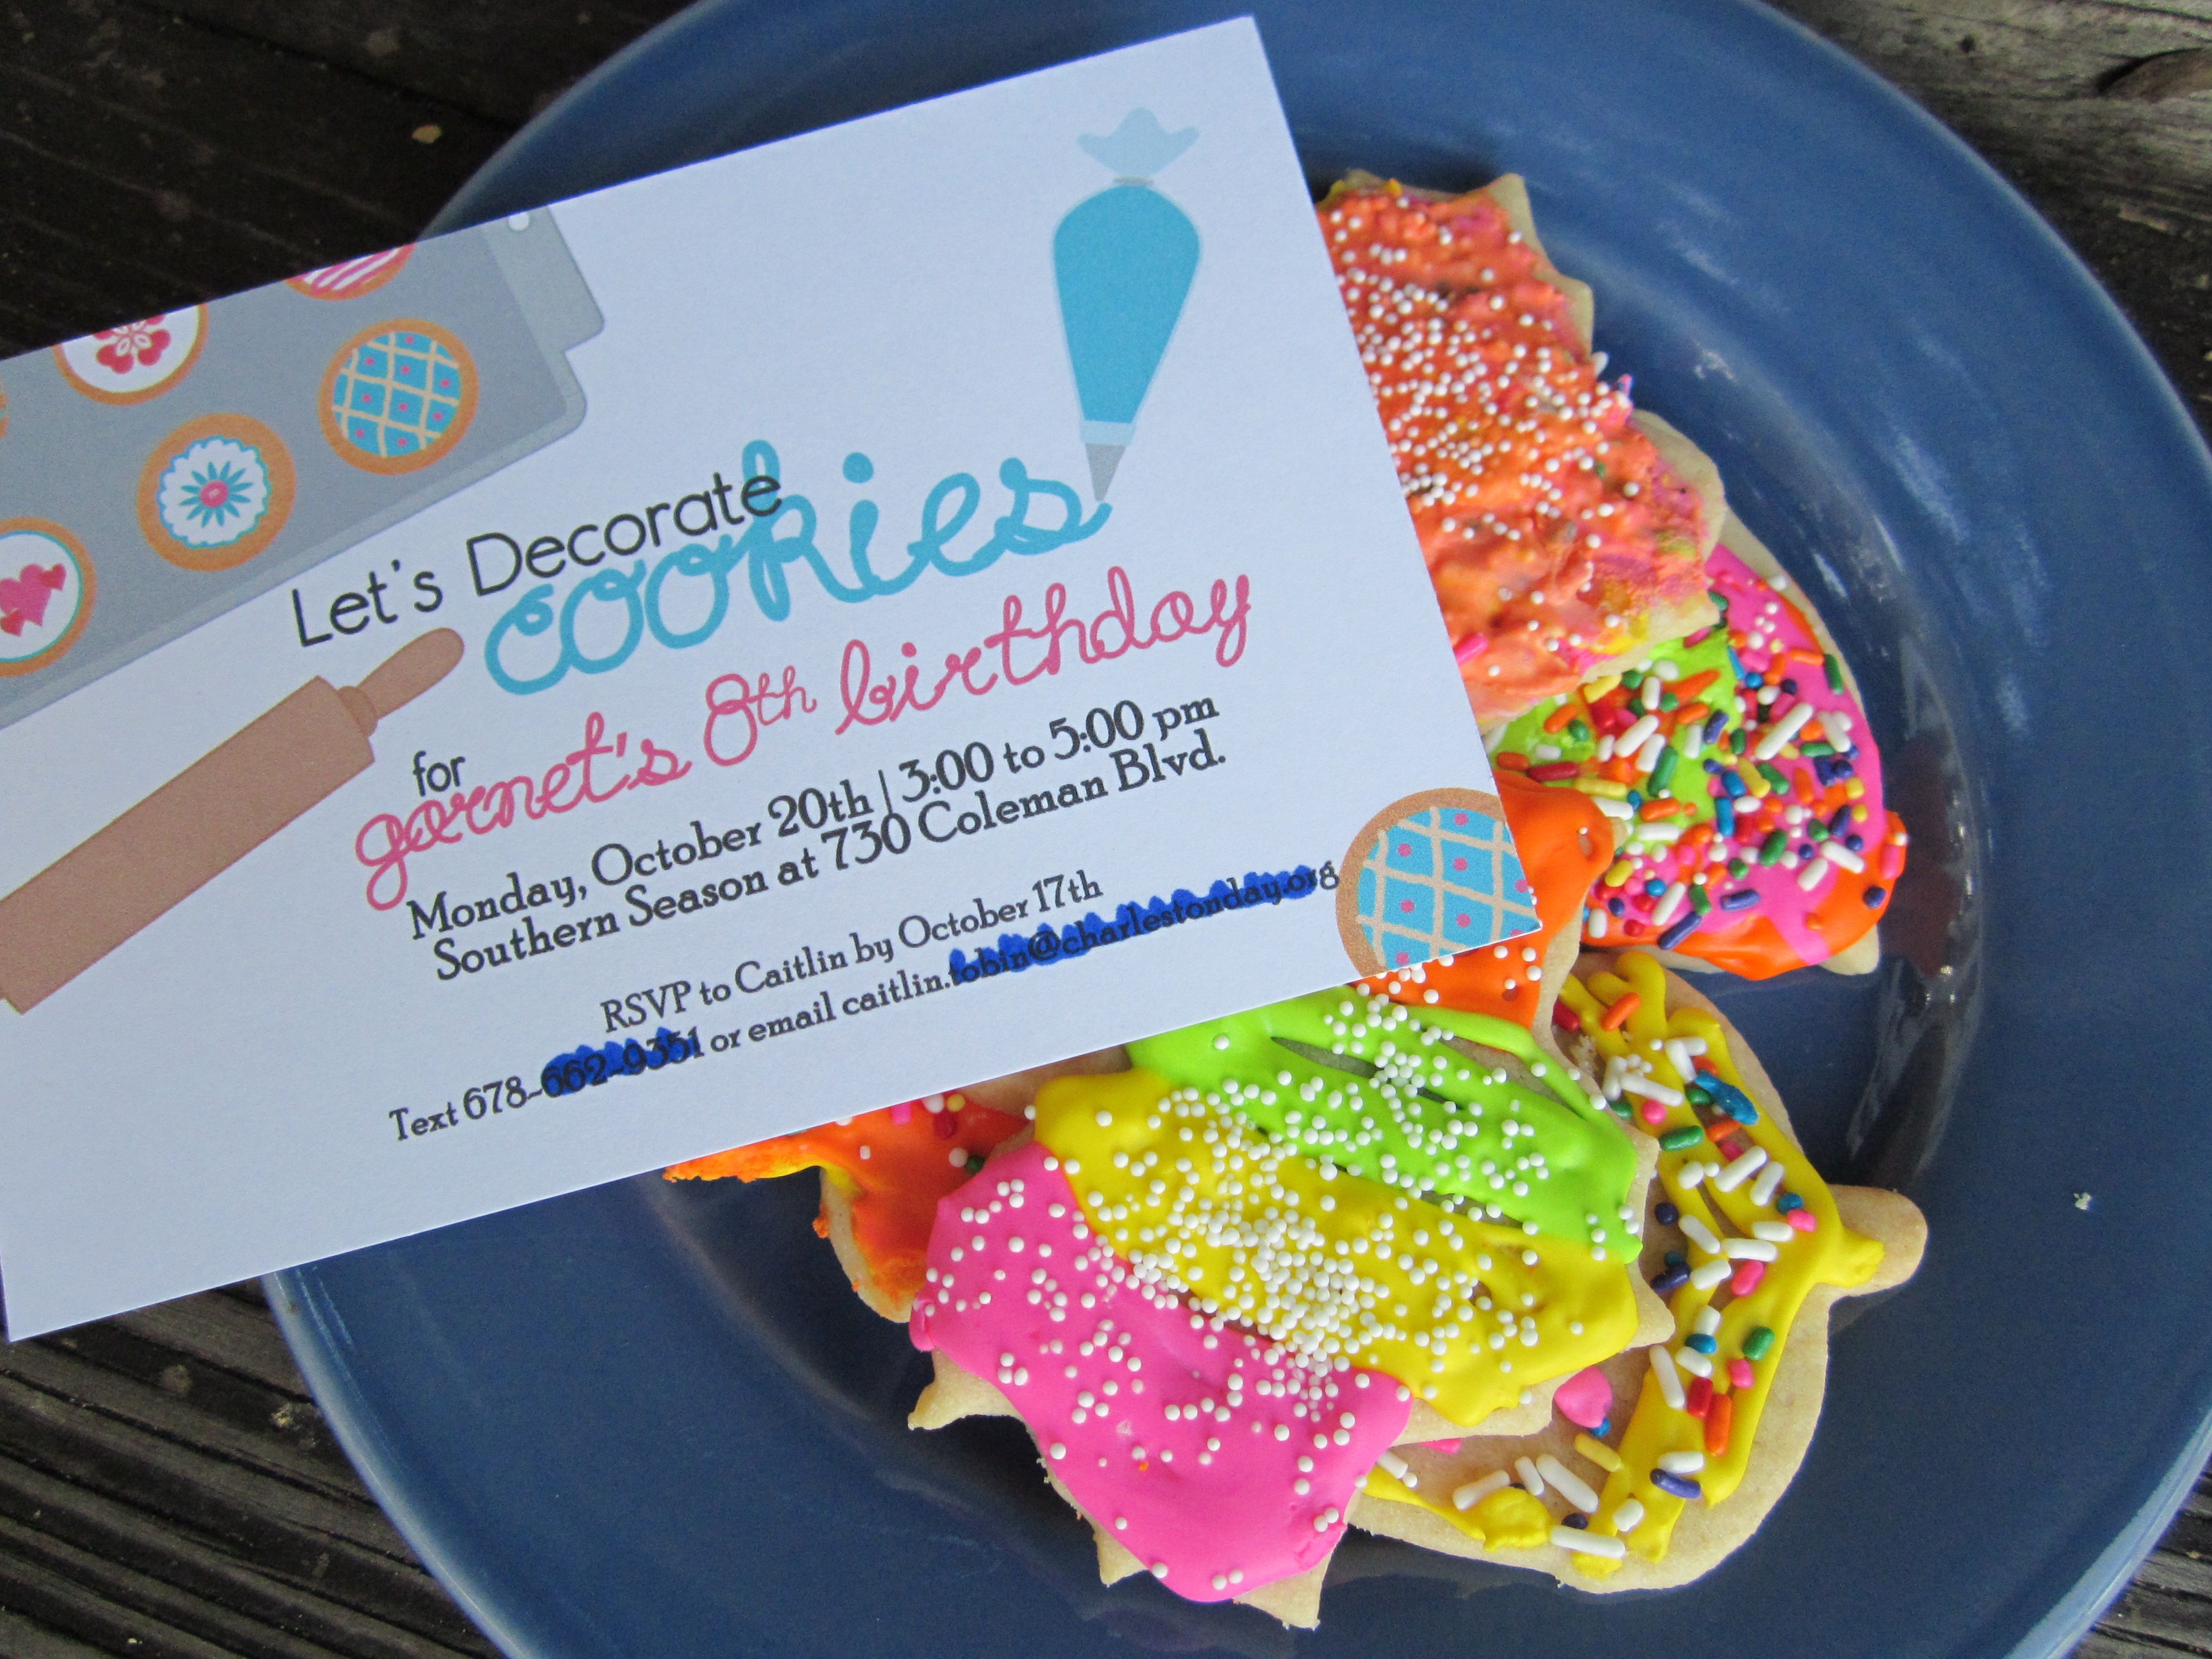 Cookie decorating party ideas - Cookie Decorating Party Invitation